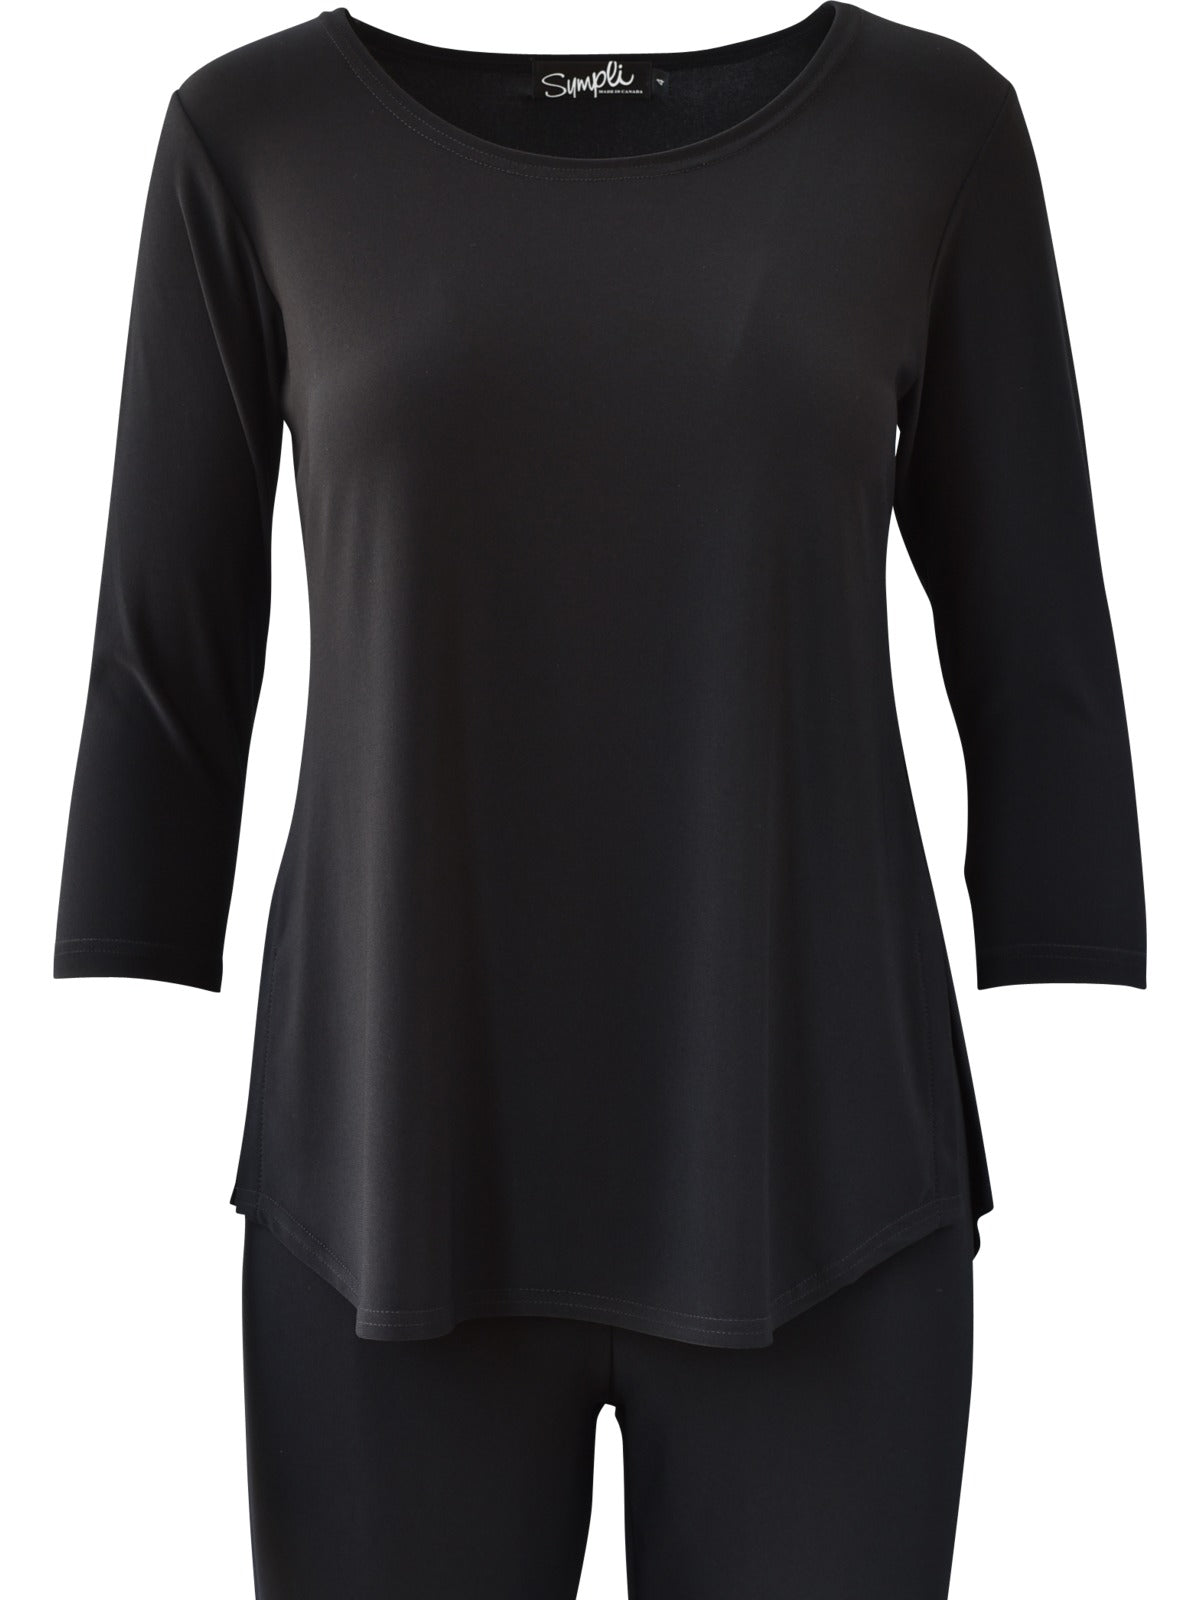 Sympli Go To Classic T Relax 3/4 Sleeve Plus - Black - Statement Boutique